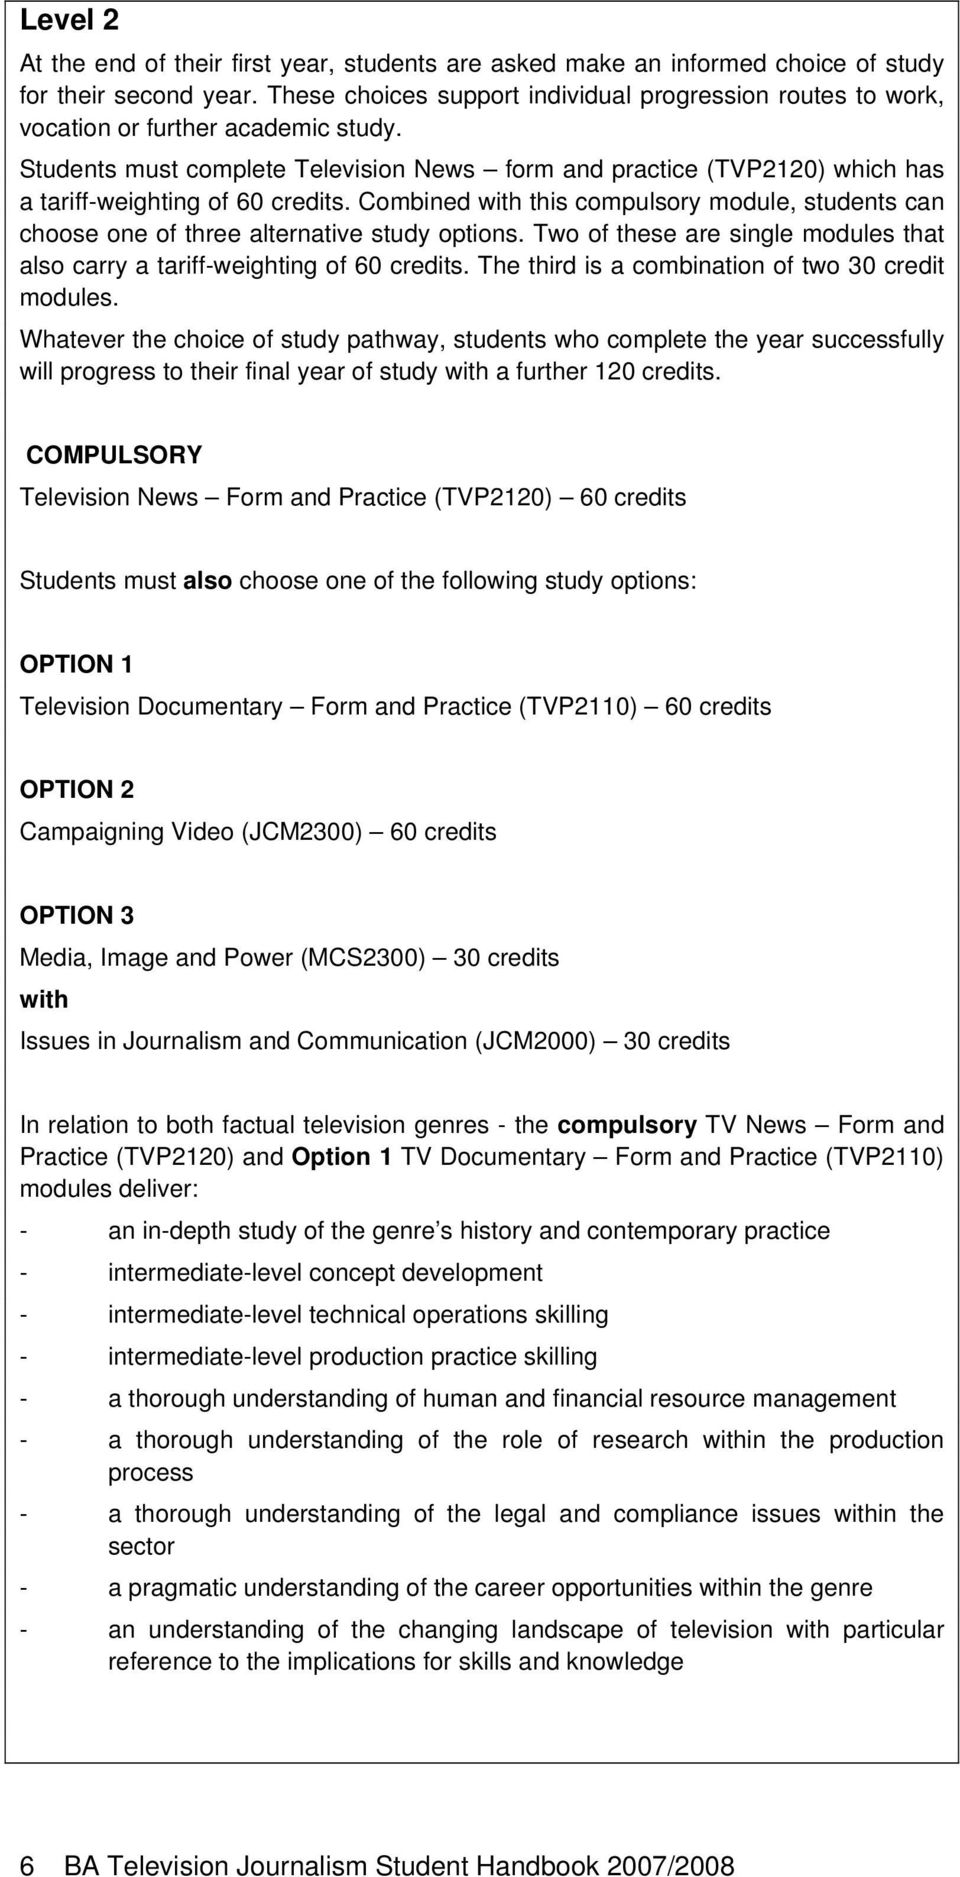 Students must complete Television News form and practice (TVP2120) which has a tariff-weighting of 60 credits.